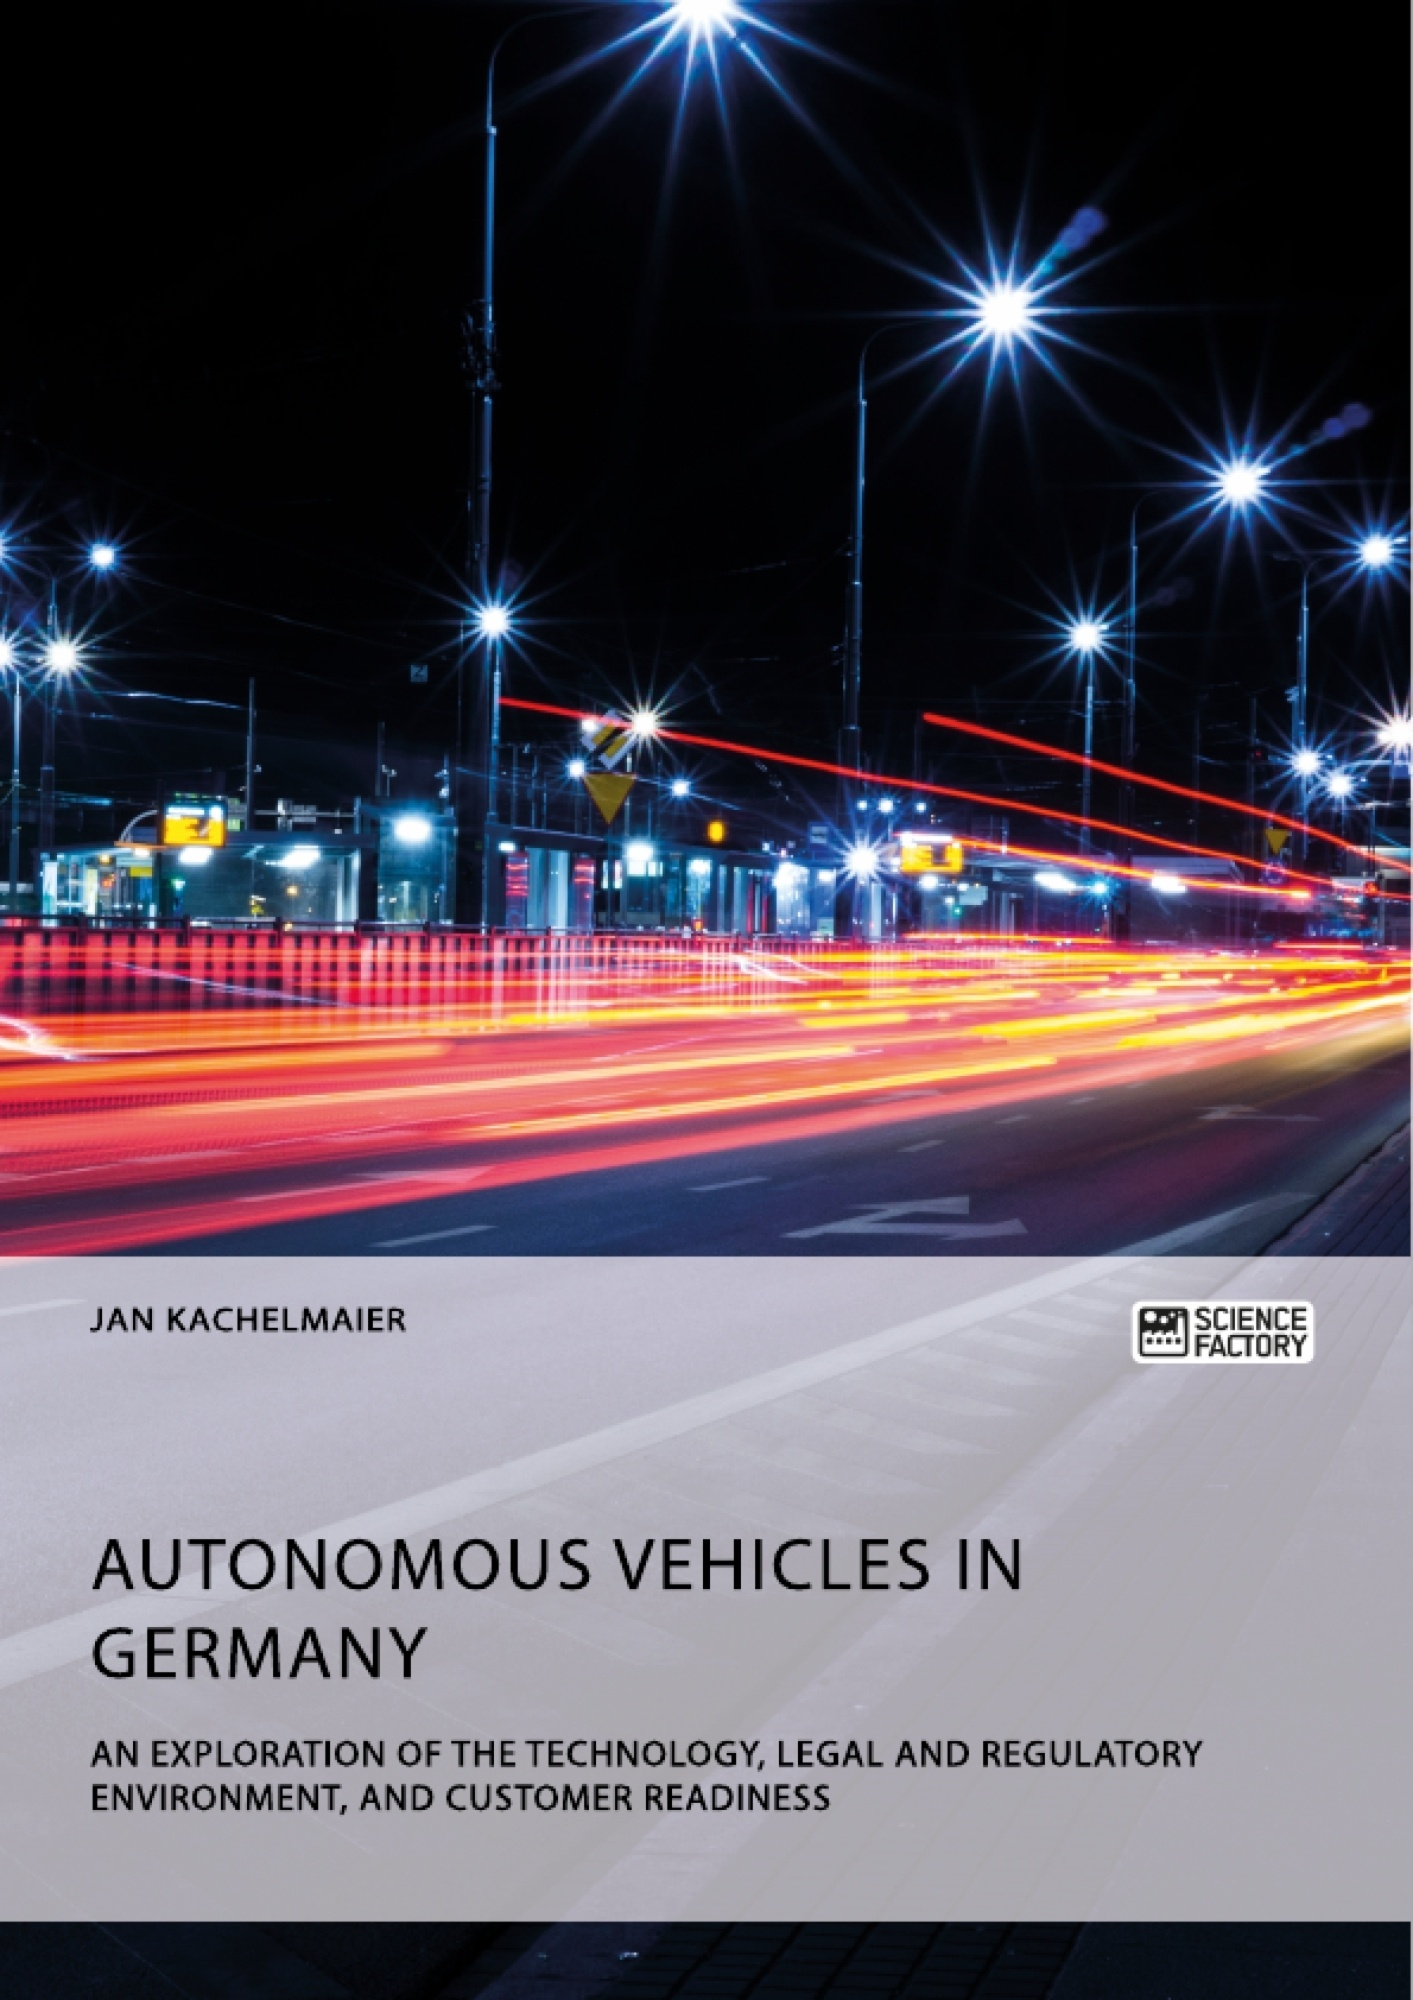 Title: Autonomous Vehicles in Germany. An Exploration of the Technology, Legal and Regulatory Environment, and Customer Readiness